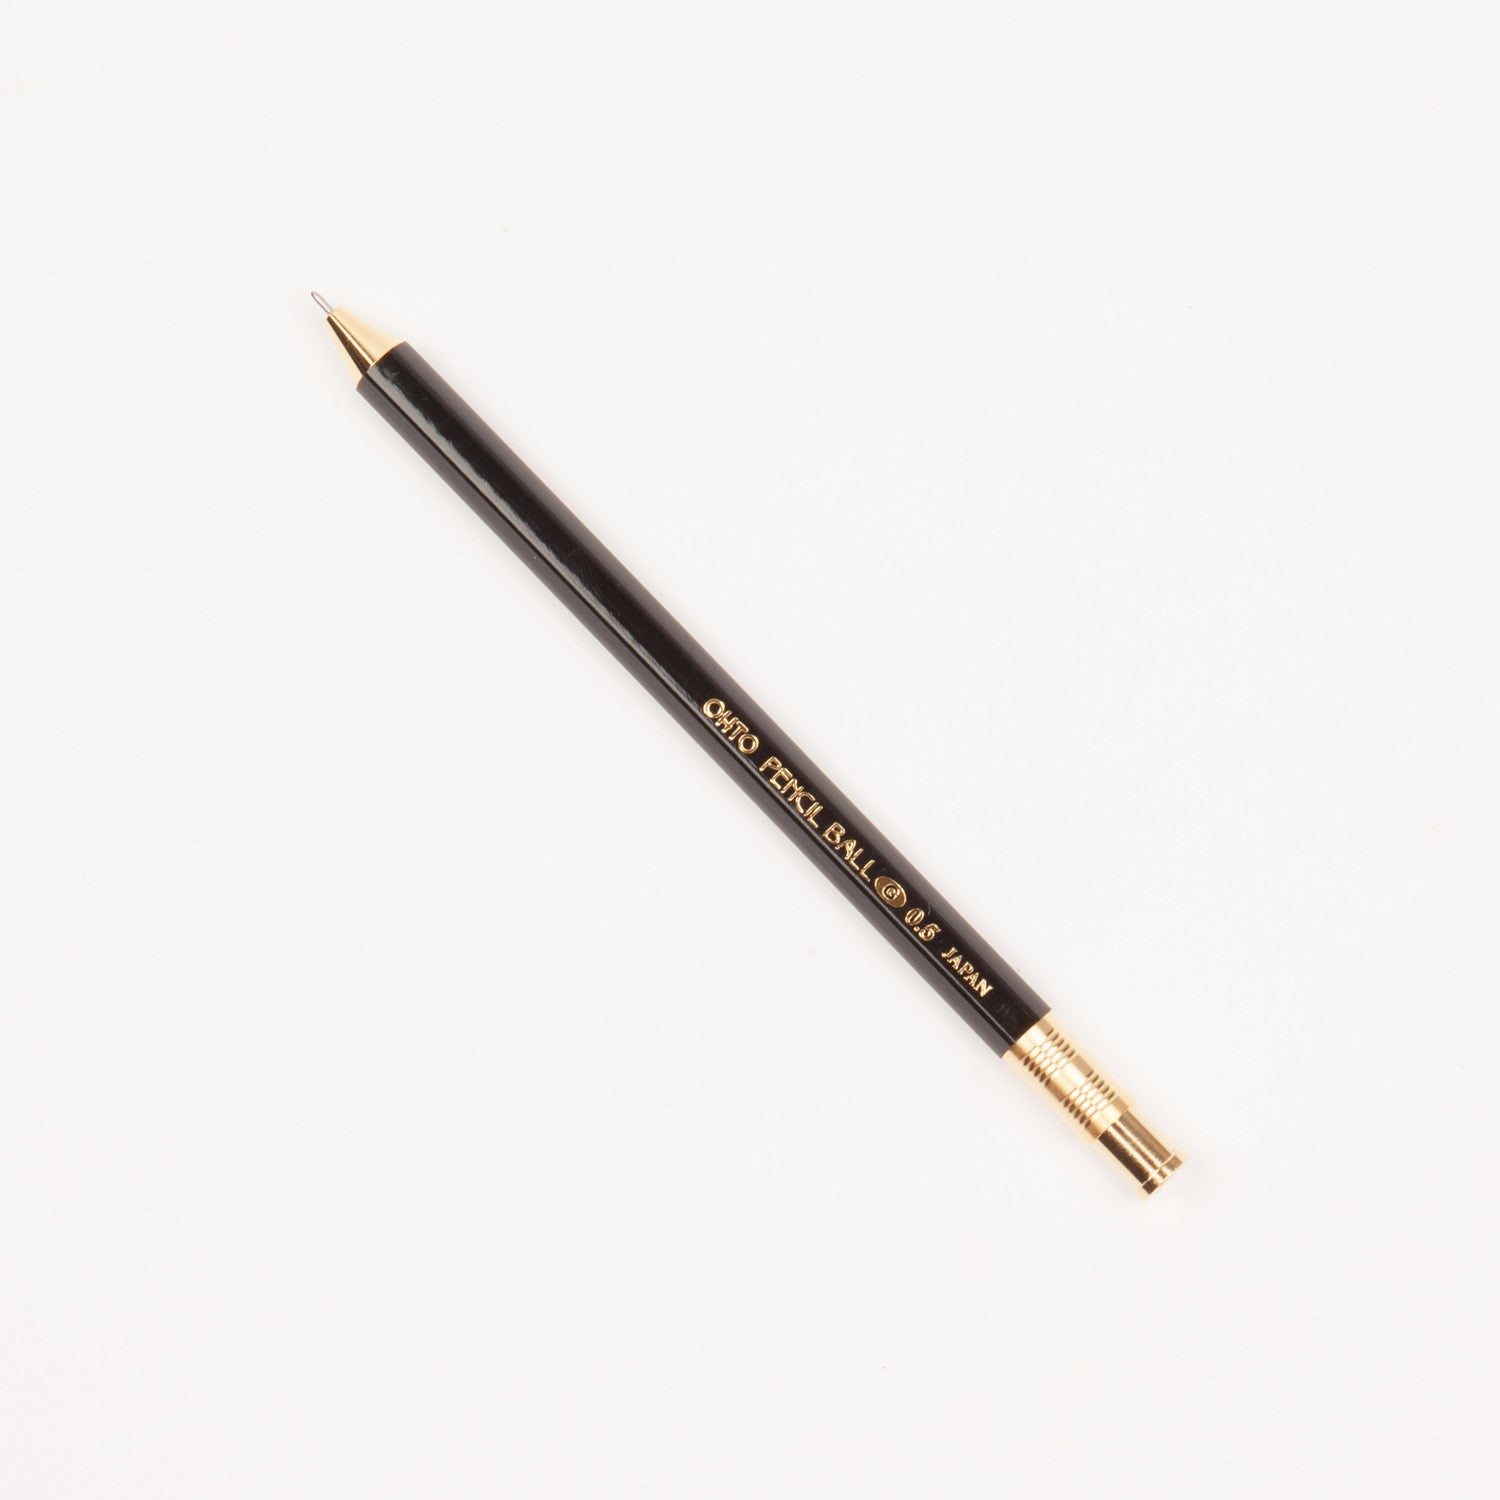 Pencil Ball G 0.5 - Black